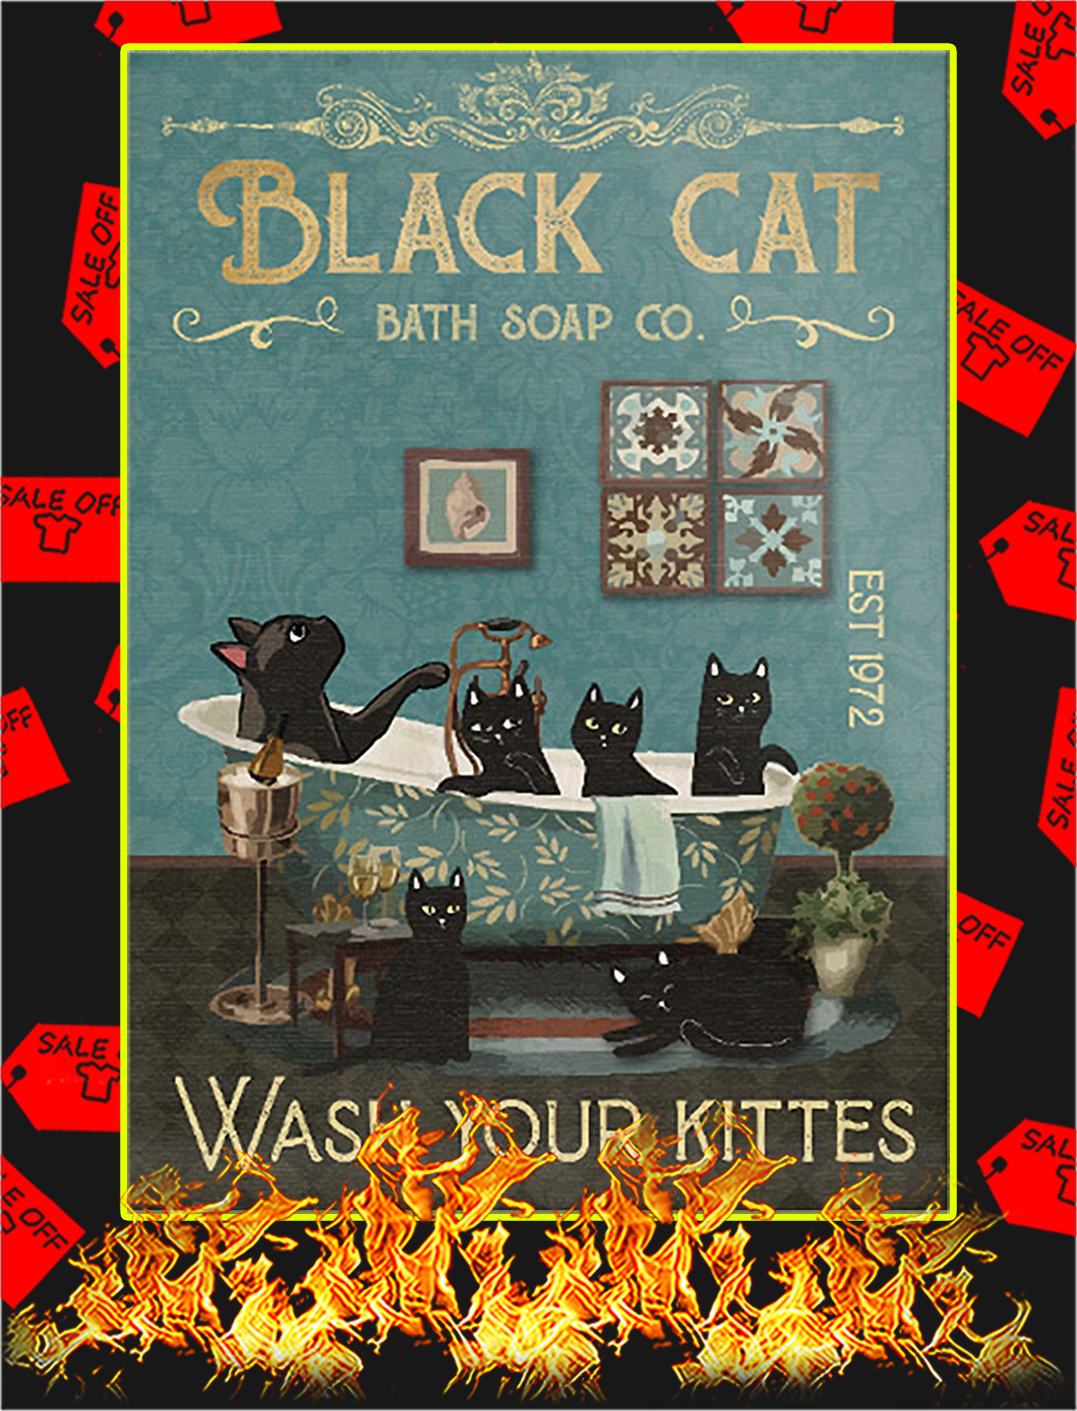 Black cat bath soap co wash your kittes poster - A1